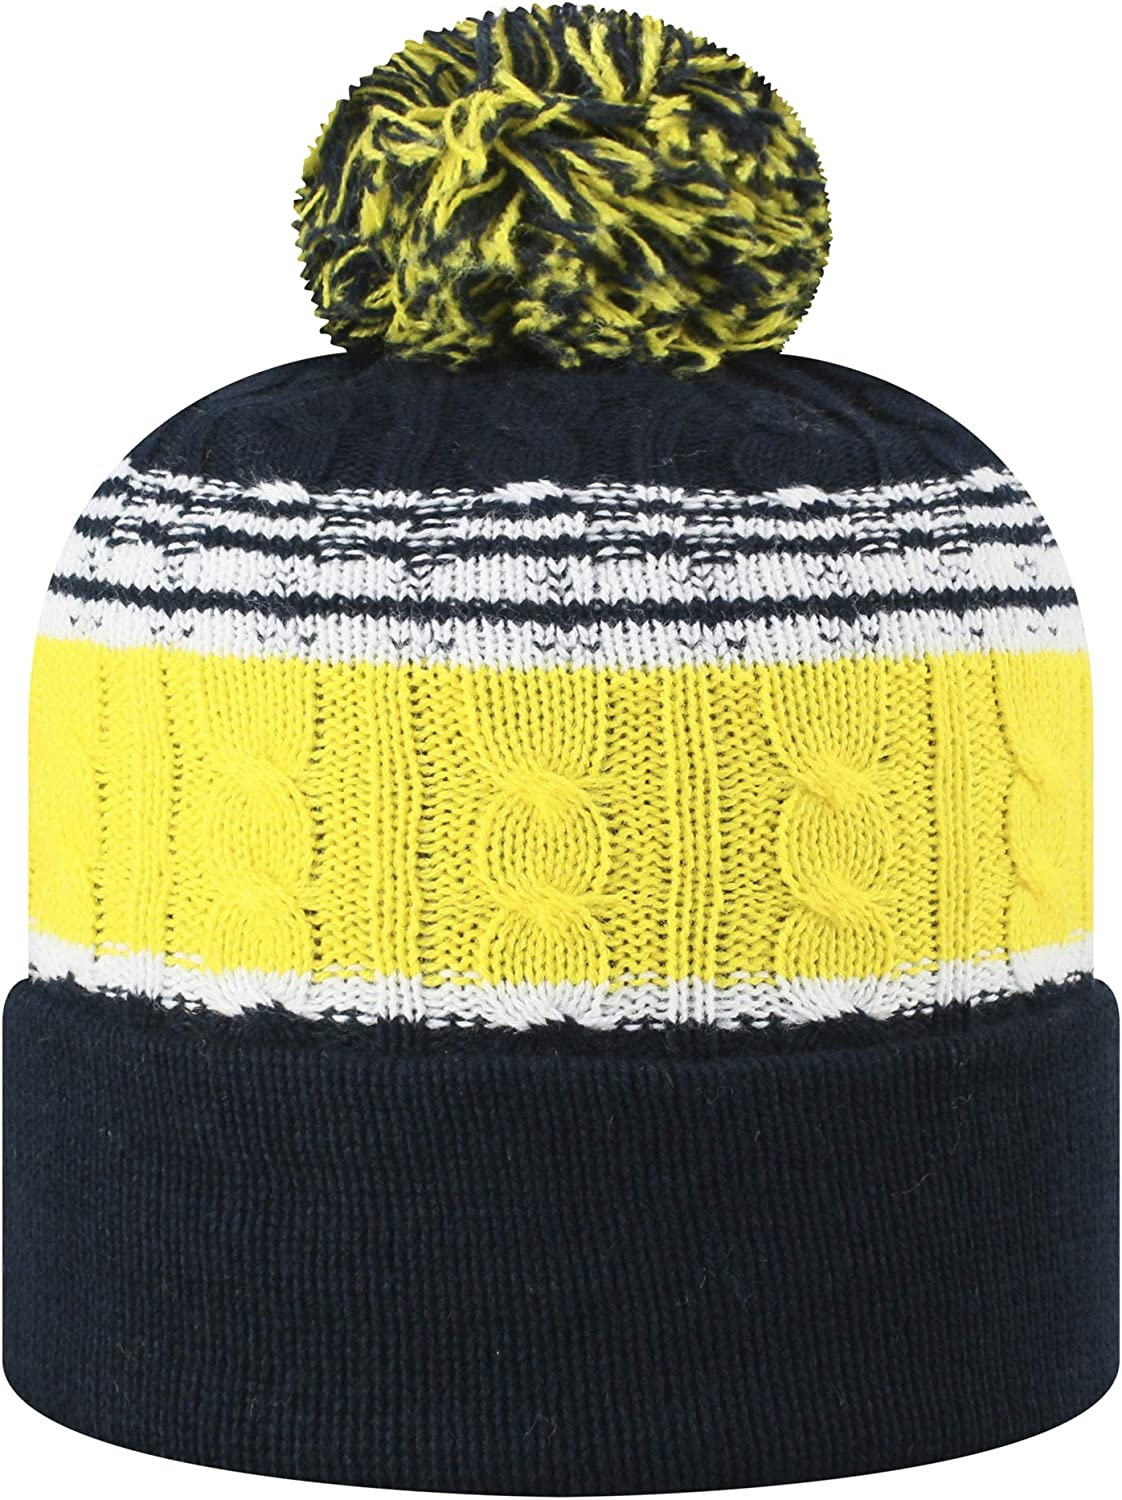 Top of the World Mens Knit Altitude Warm Team Icon Hat